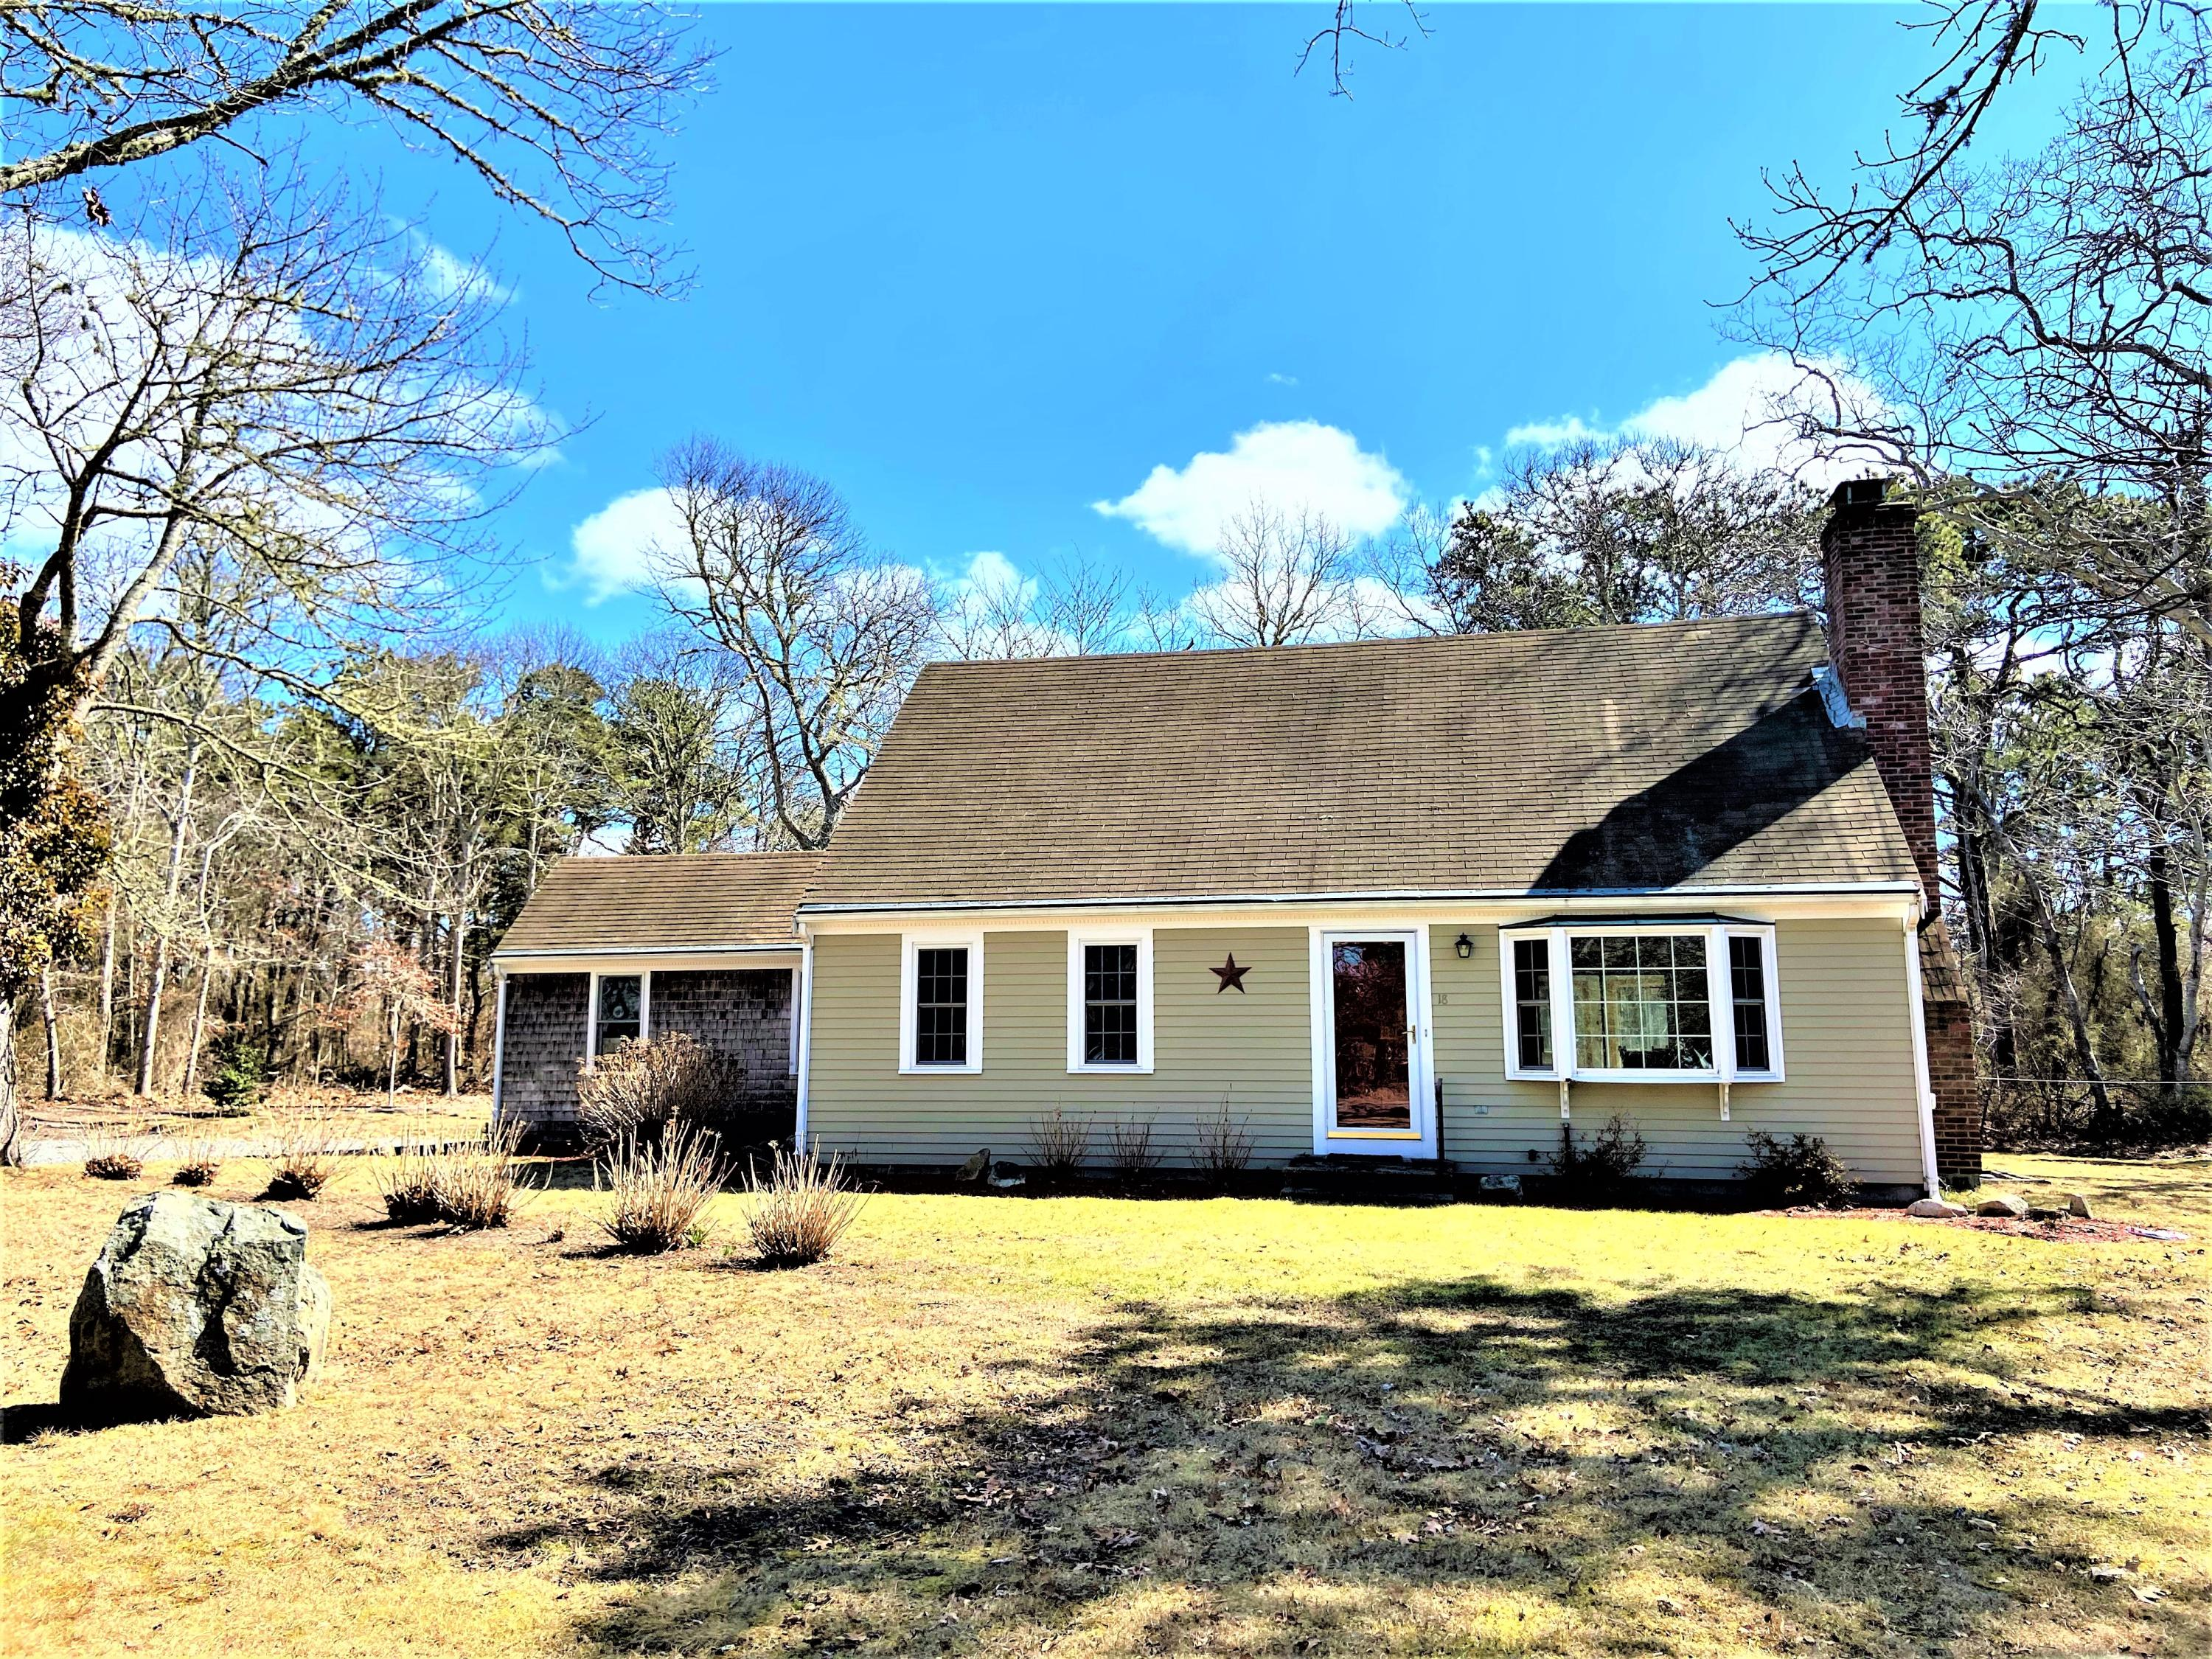 18 Captain Thatcher Road, Brewster MA, 02631 sales details